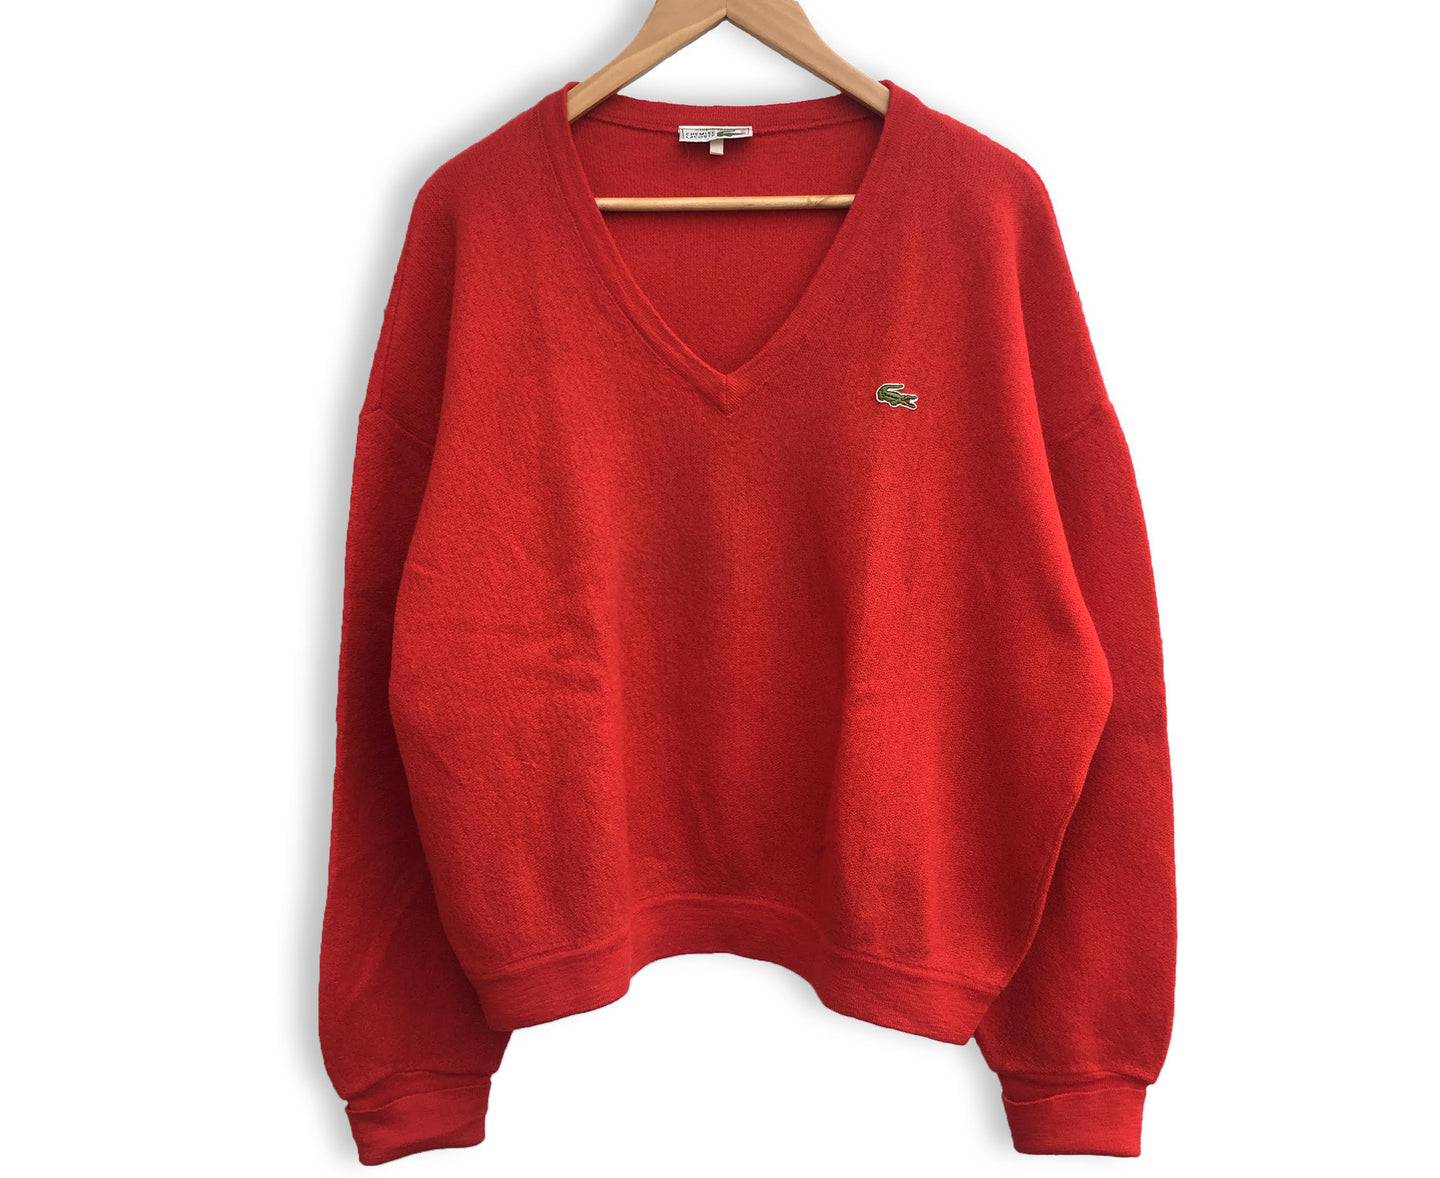 Vintage Lacoste Red V-Neck Sweater